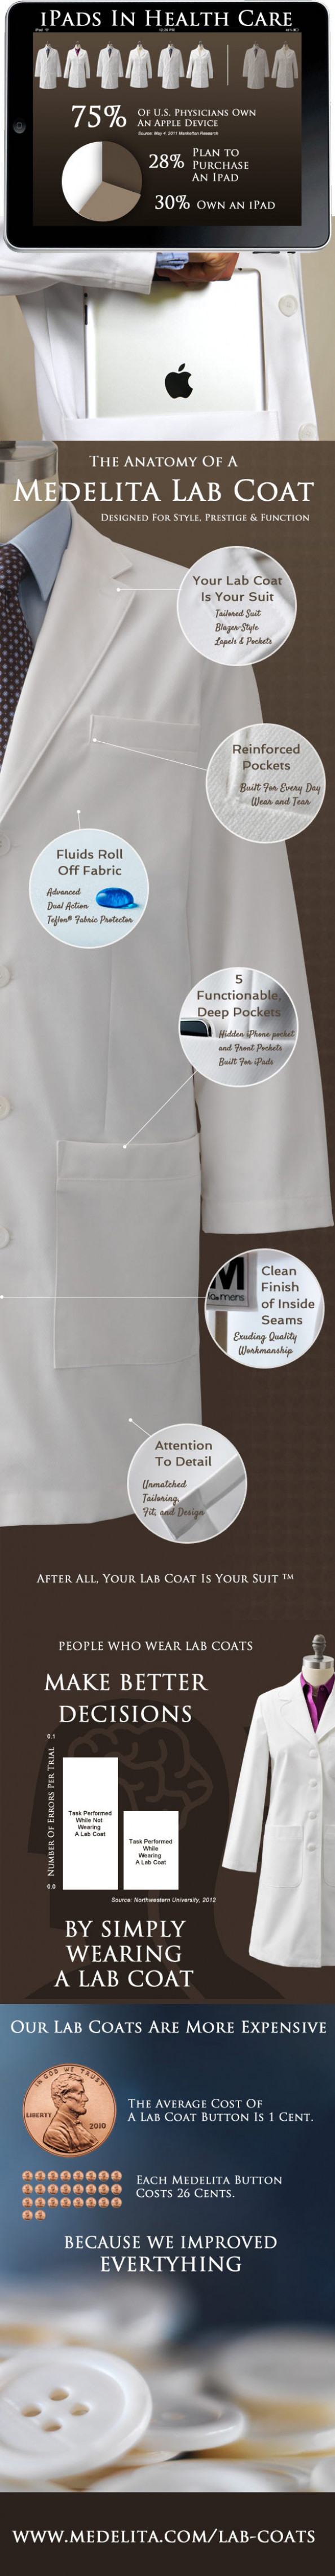 Lab Coats by Medelita Infographic